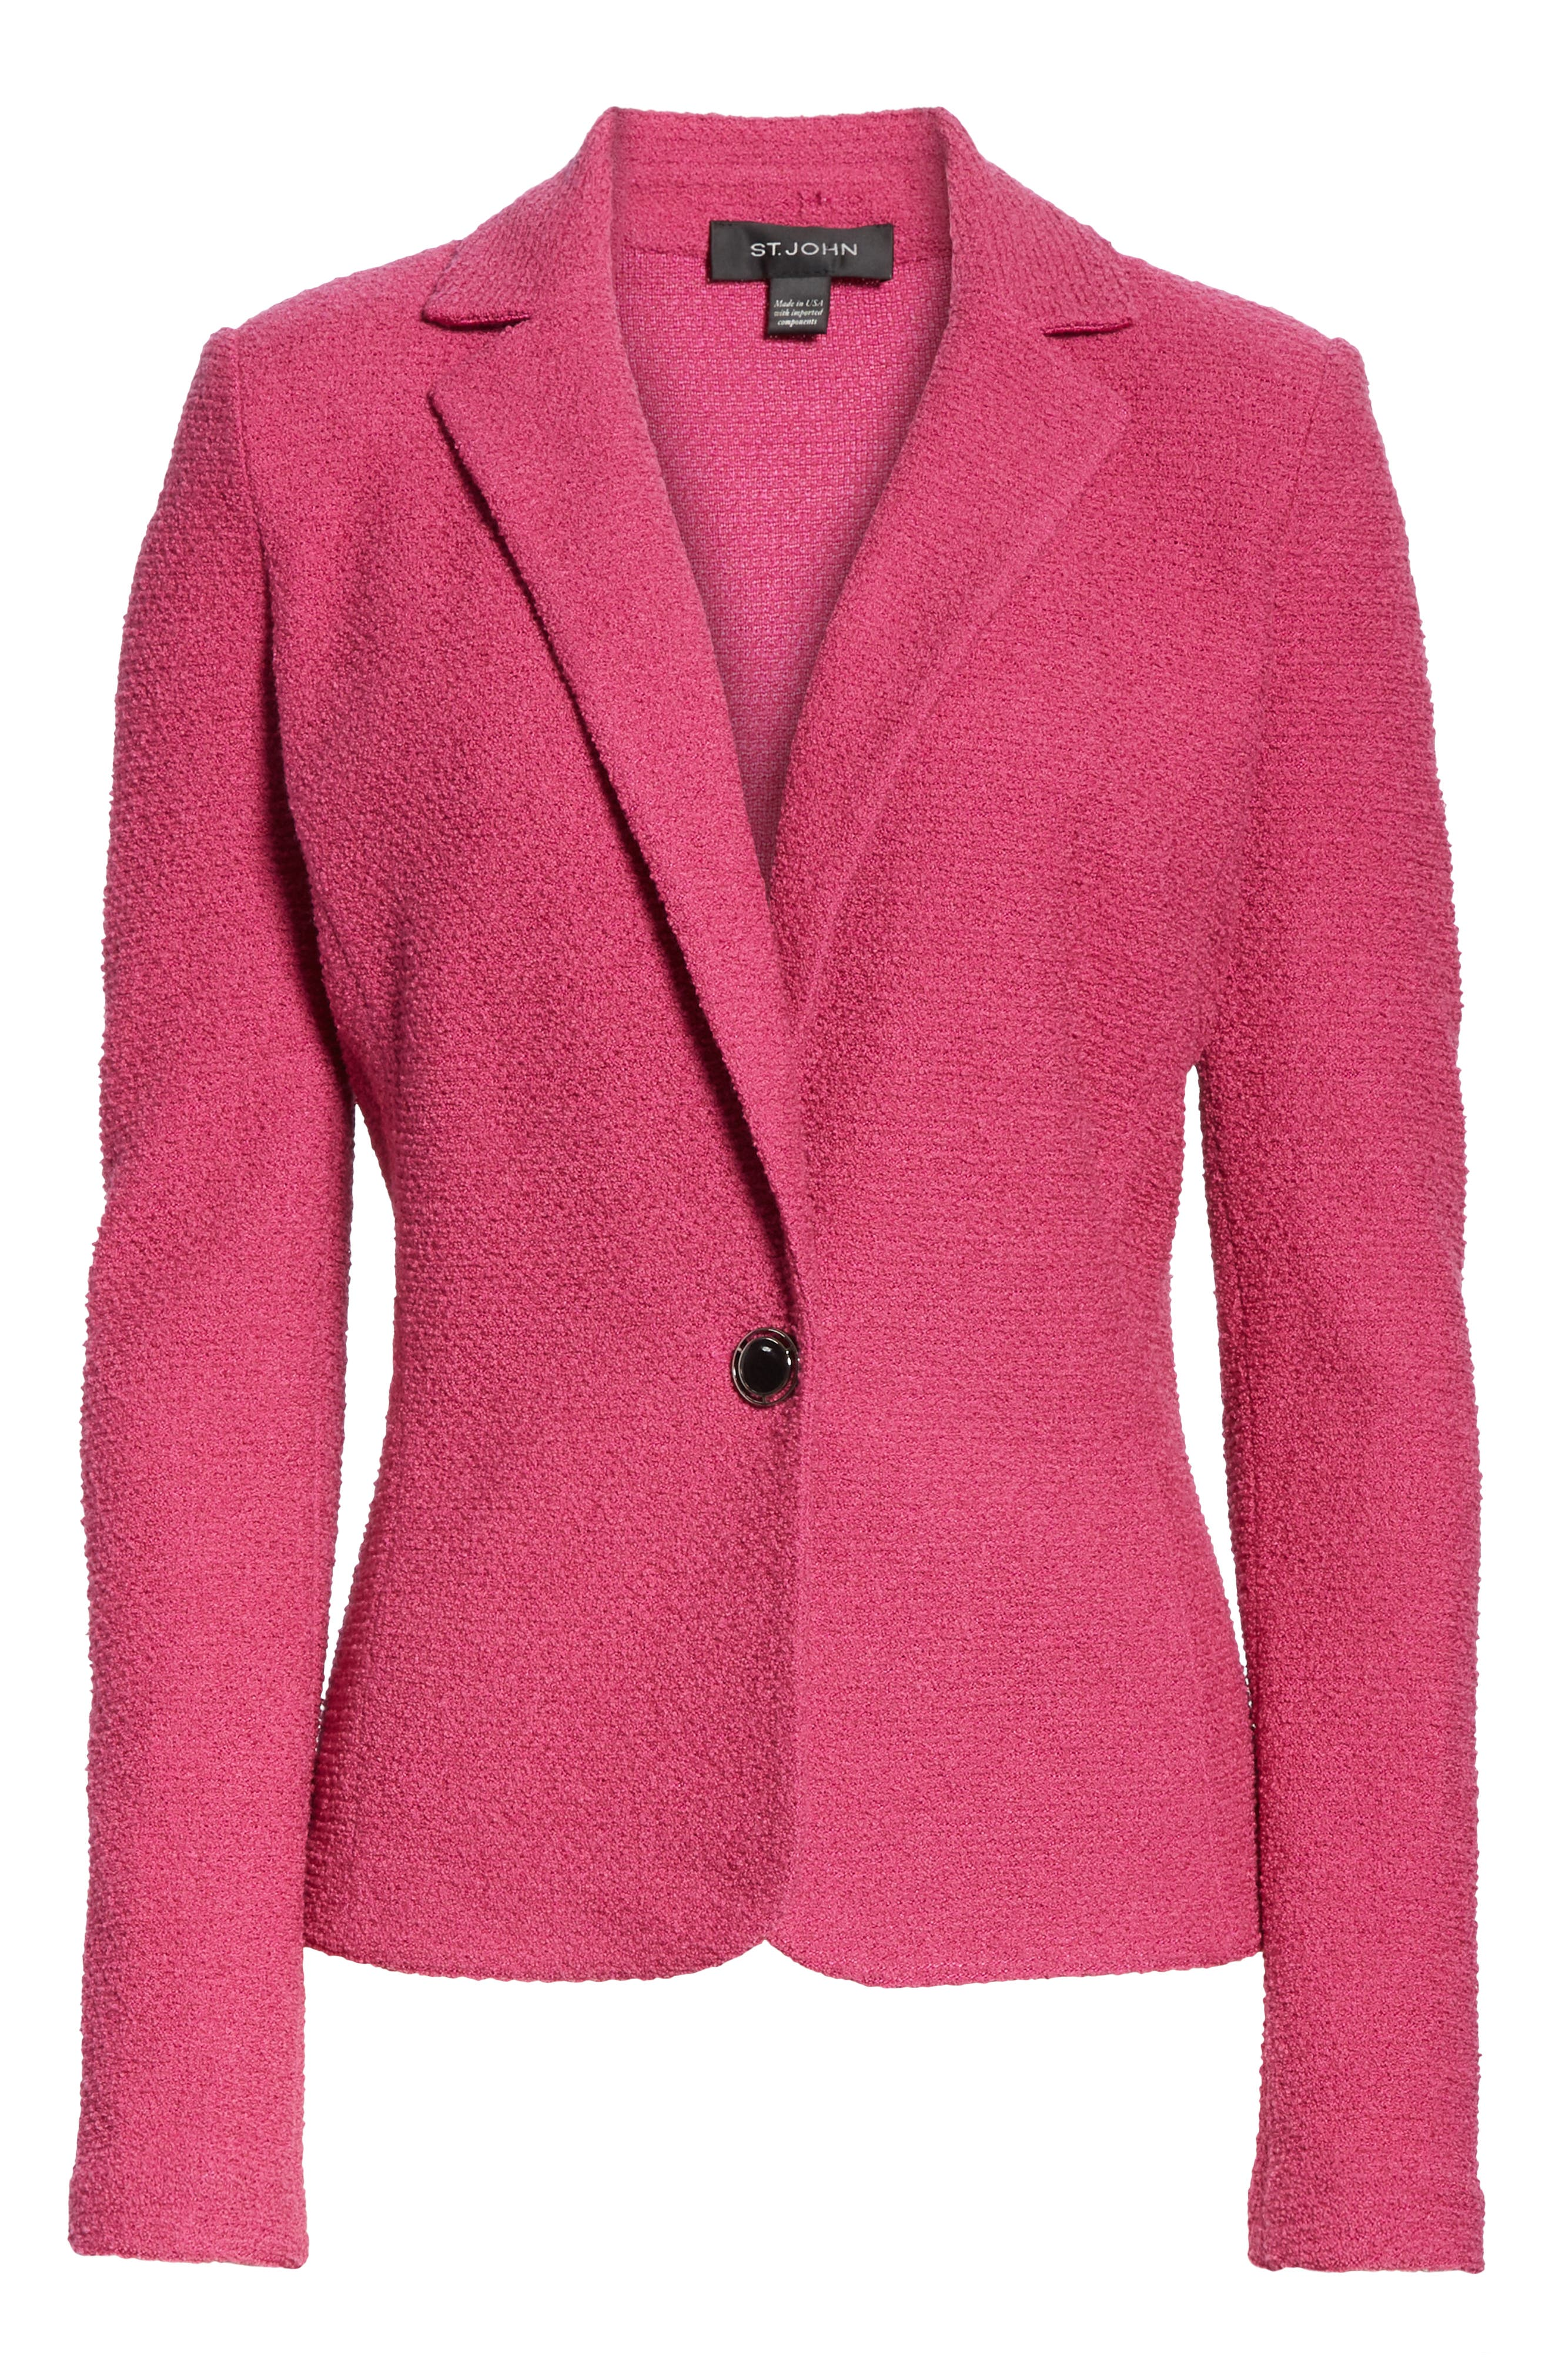 ST. JOHN COLLECTION, Refined Knit Jacket, Alternate thumbnail 6, color, CAMELLIA